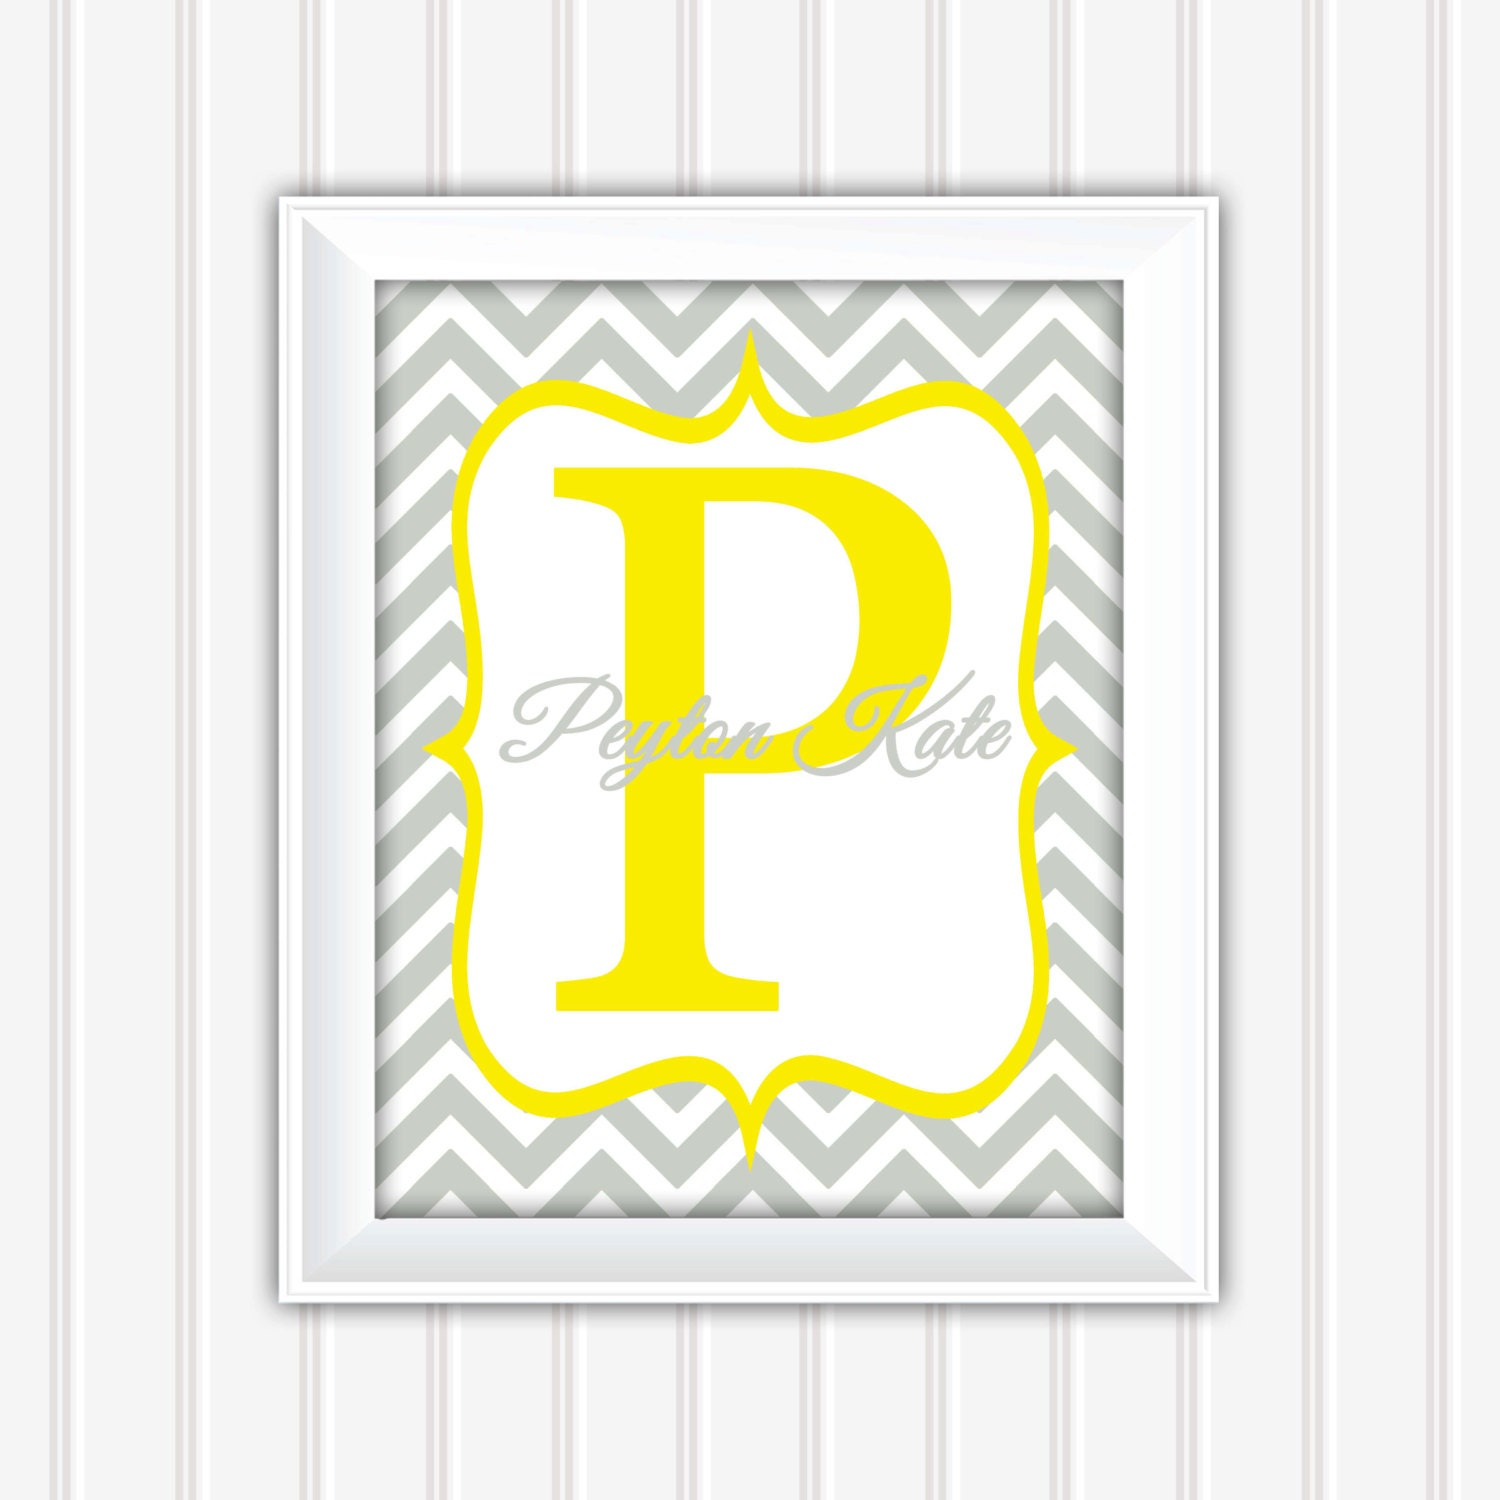 Chevron Wall Art, Name Wall Art, Initial Wall Art, Personalized Wall ...